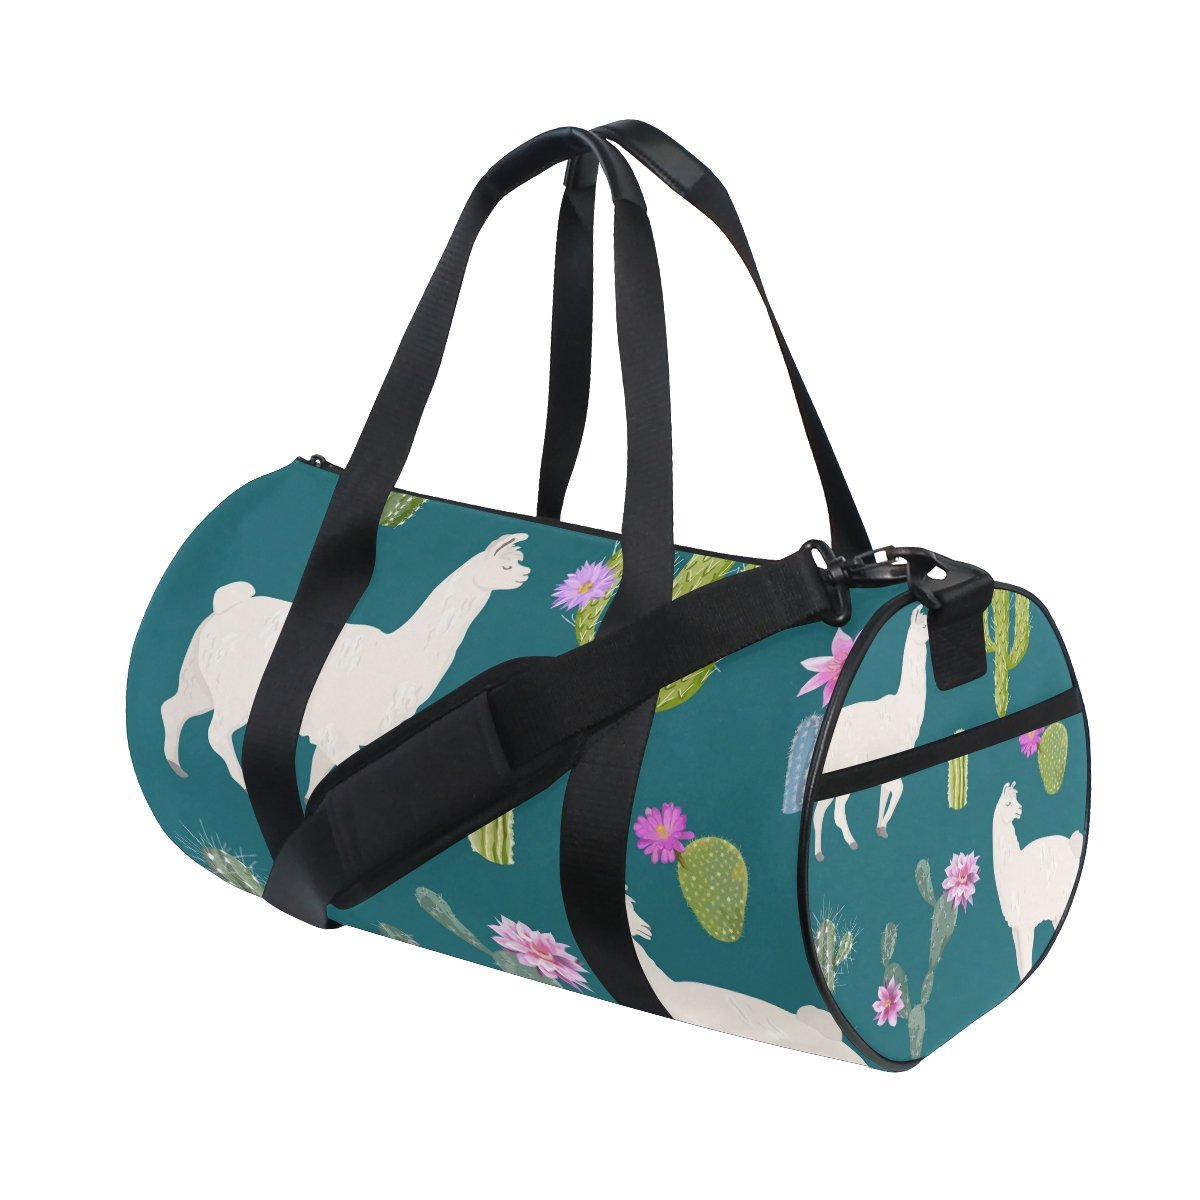 Llama And Cactus Seamless Pattern Travel Duffle Bag Sports Luggage with Backpack Tote Gym Bag for Man and Women